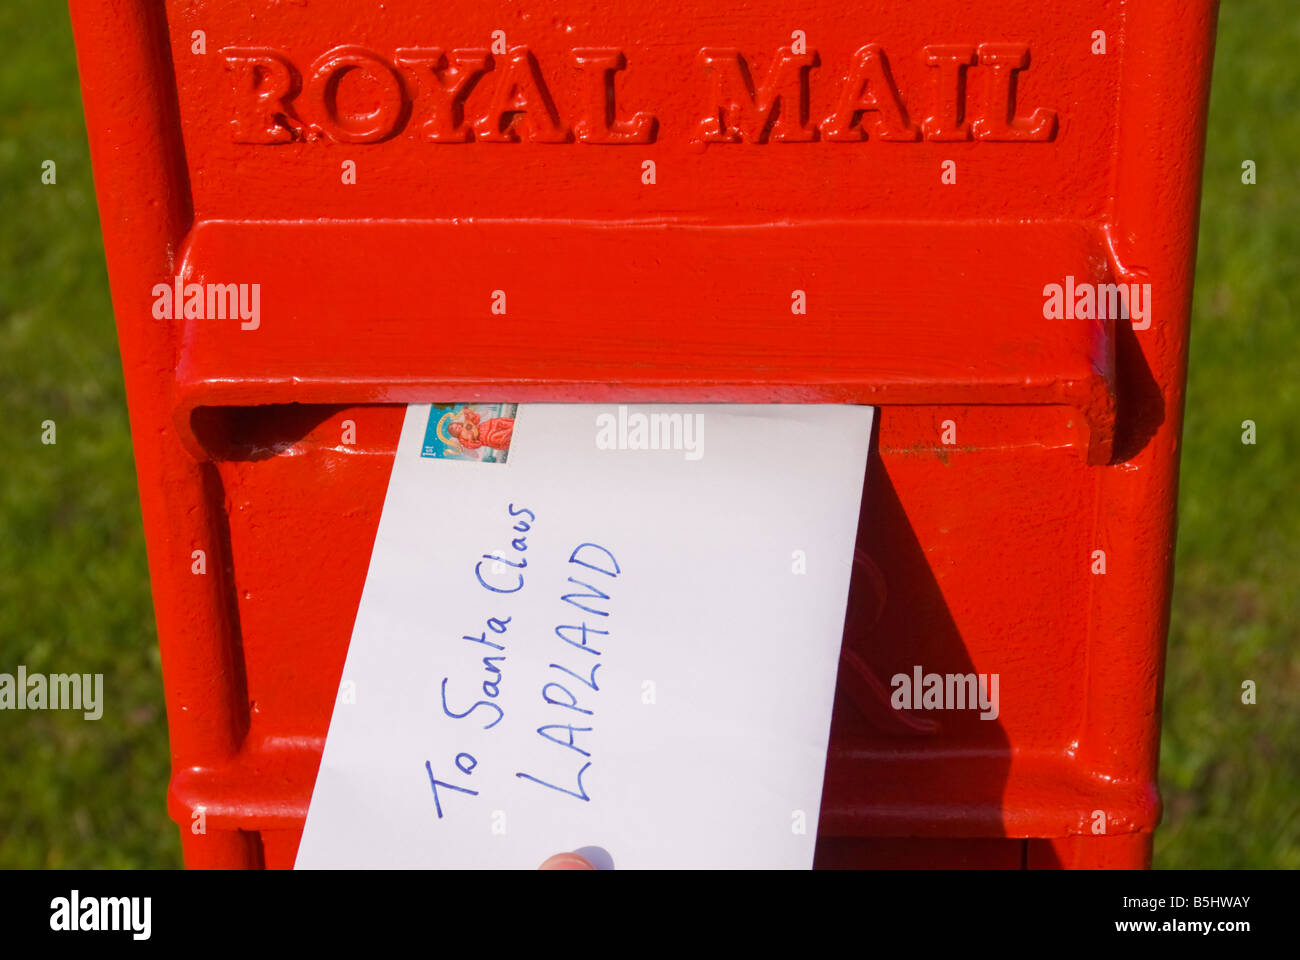 A letter being posted in Uk Royal Mail postbox addressed to Santa Claus Lapland telling of child's Christmas - Stock Image